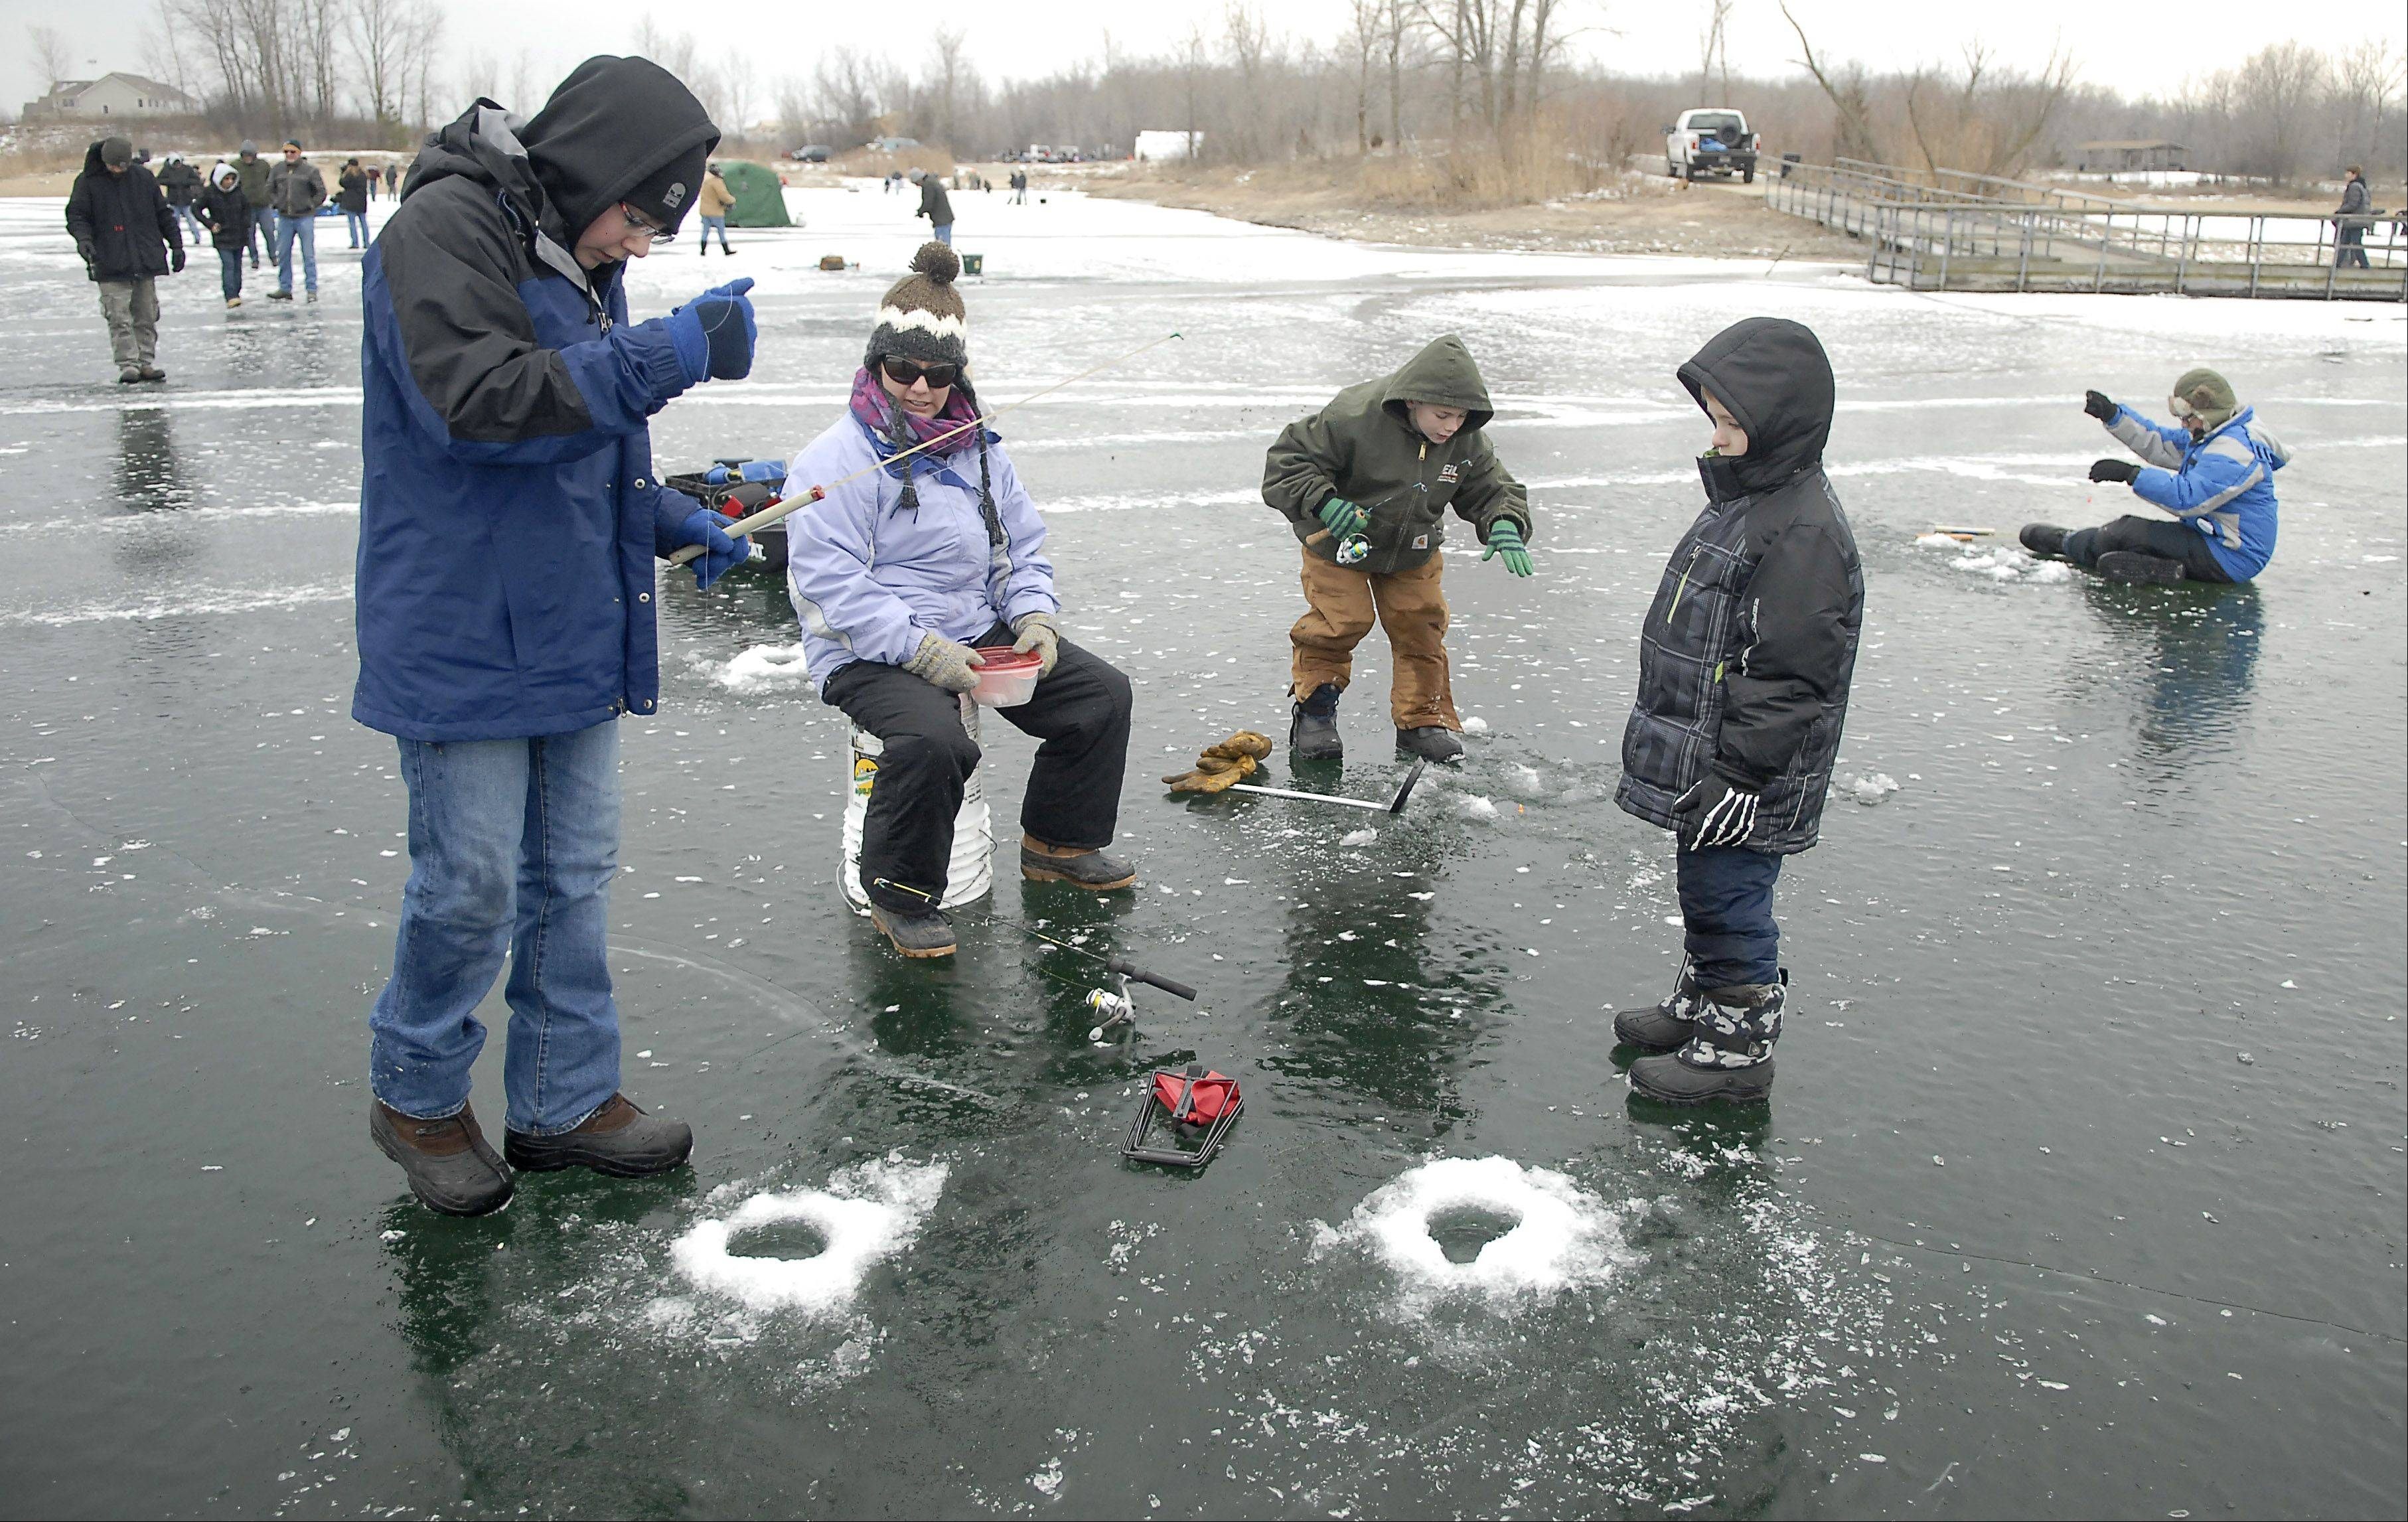 Thomas Gaudio, 15, of Lake in the Hills, left, lowers his line into a fresh hole near Kim Cederlund of Union and her sons, Tyler, 11, center, and 8-year-old Will during Saturday�s Frost Fishing Fair in Cary. The event was organized by the McHenry Conservation District.